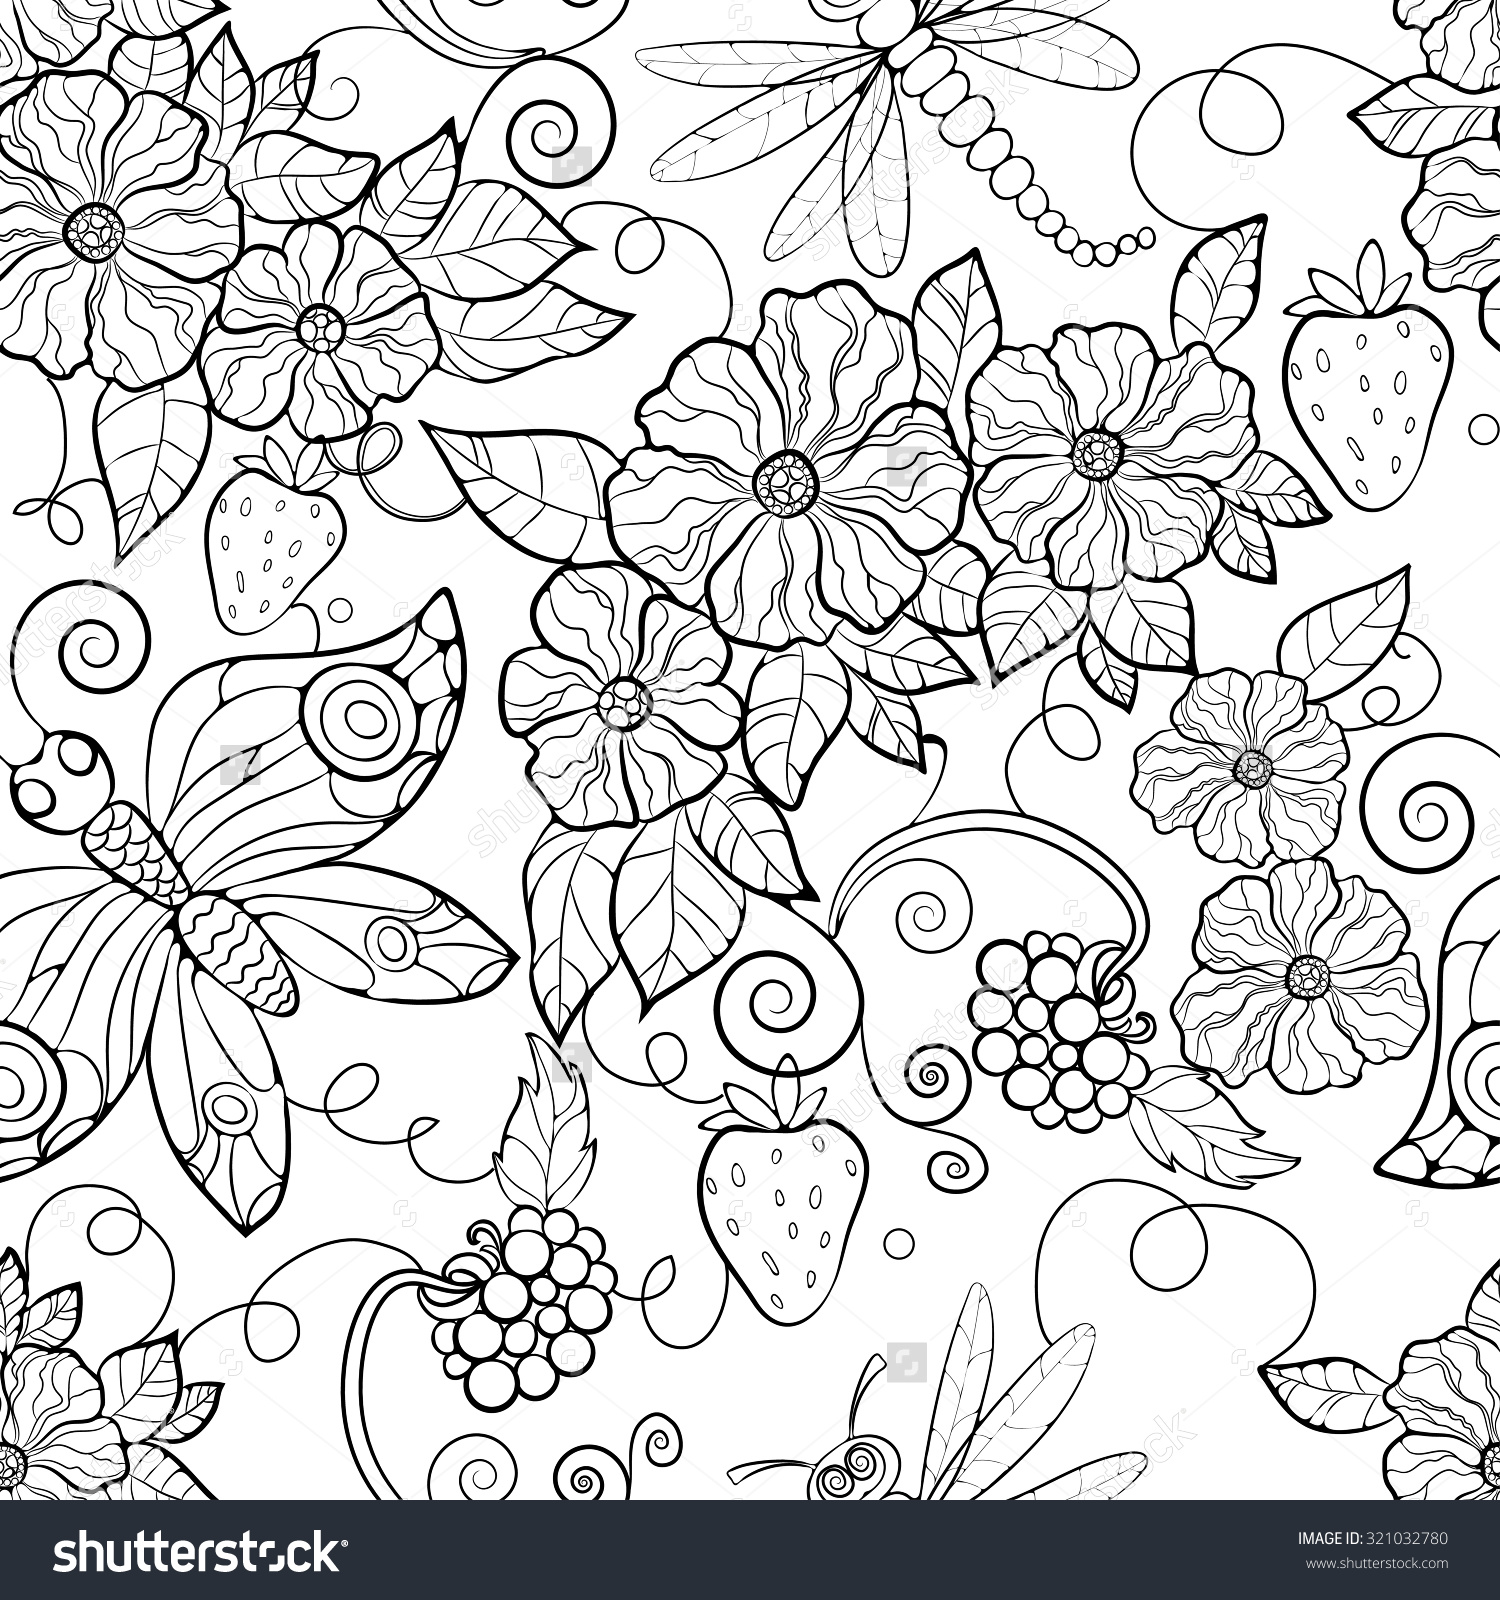 Free Printable Adult Coloring Pages Flower Coloring Coloring Pages